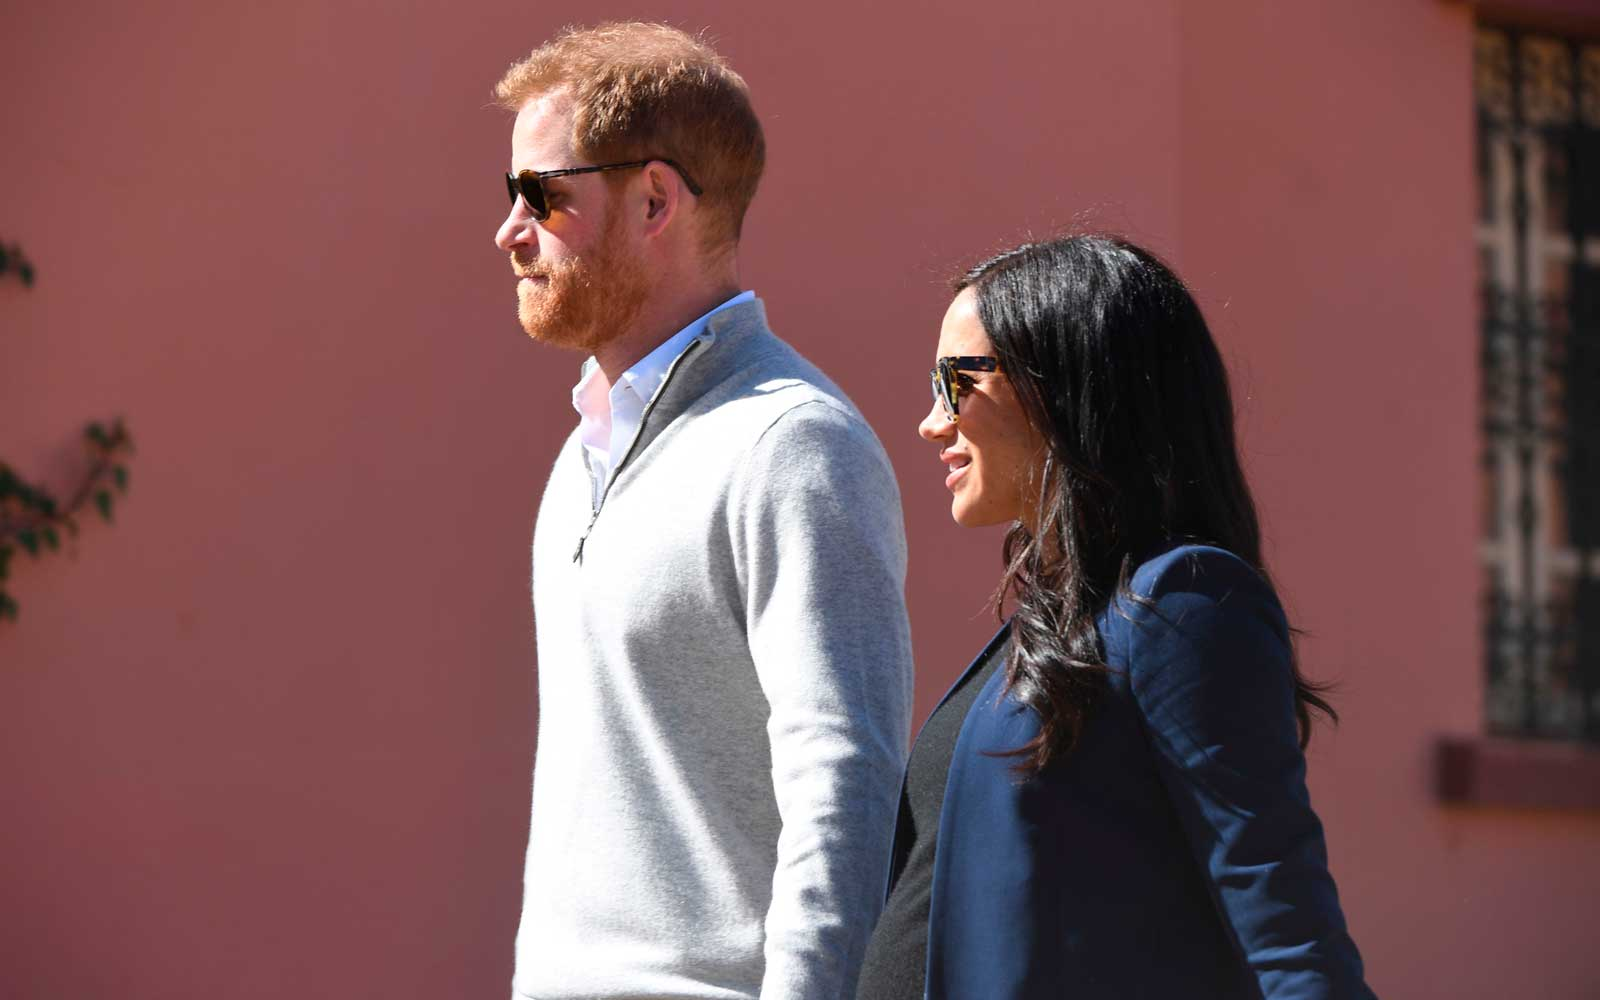 Prince Harry and Meghan Markle Took a Secret Trip to L.A. to Visit Mom Doria Ragland